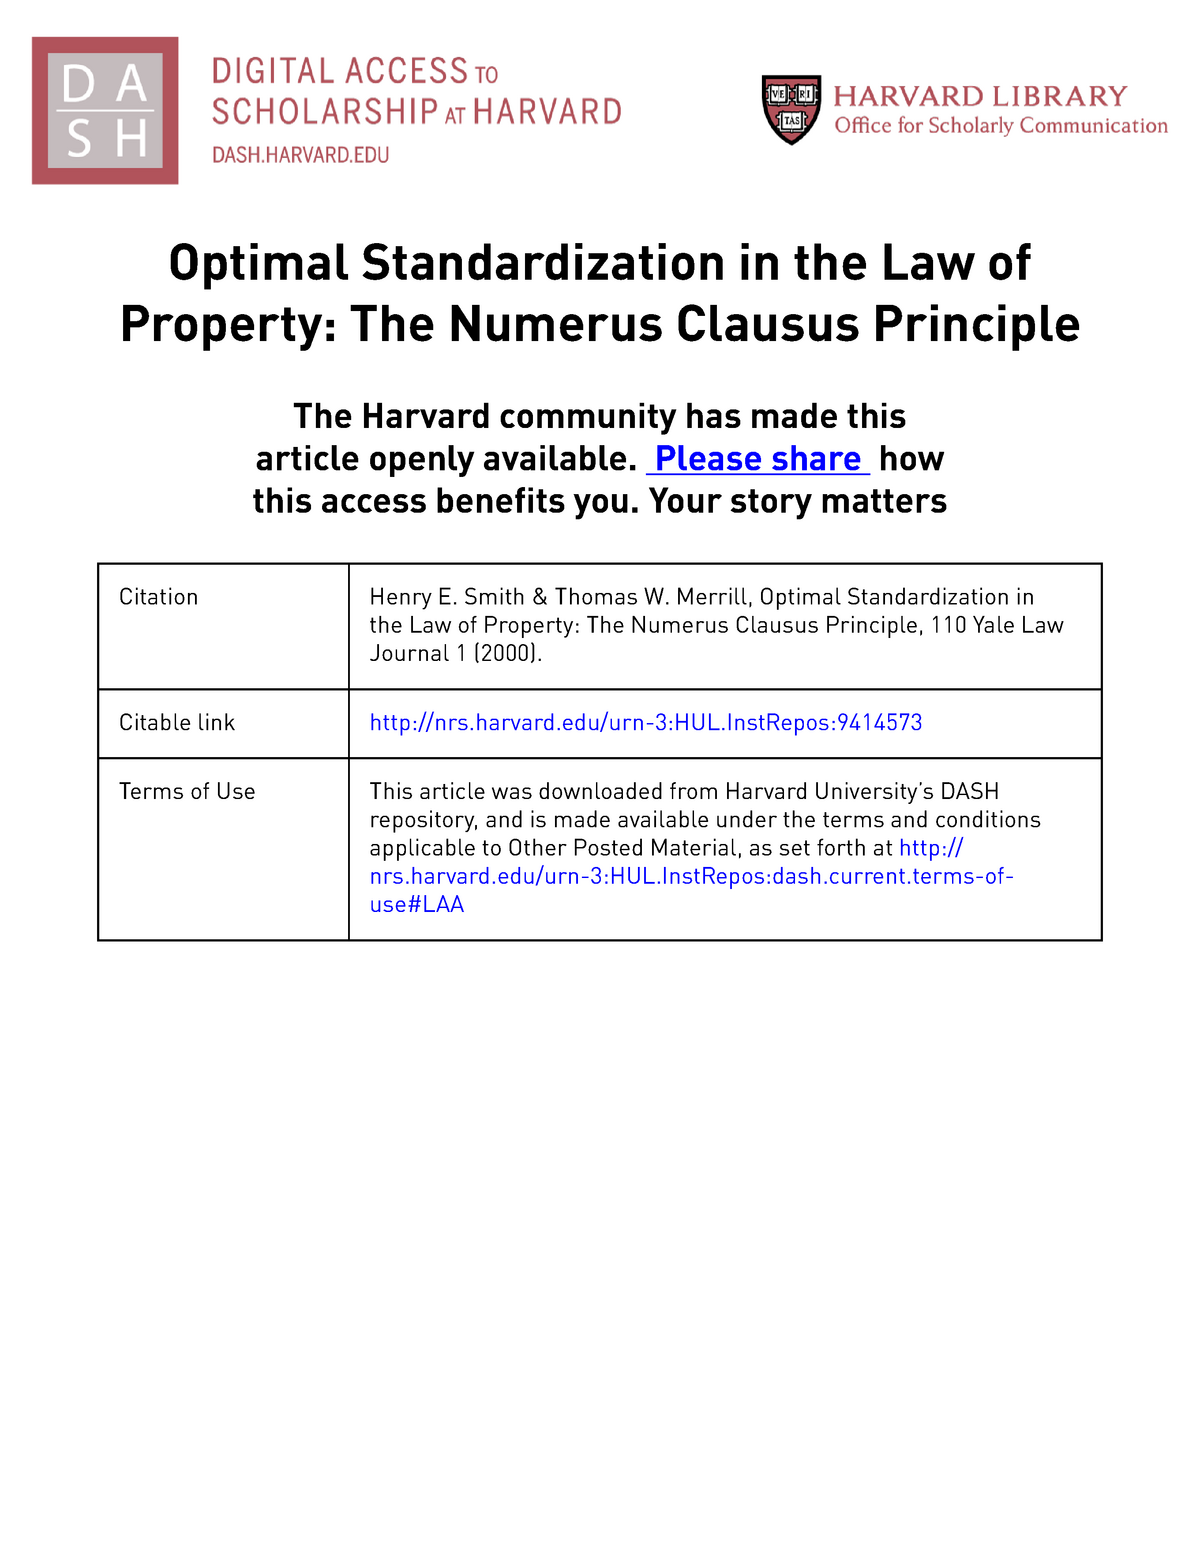 Merrill and Smith, Optimal Standardization - Commercial Law